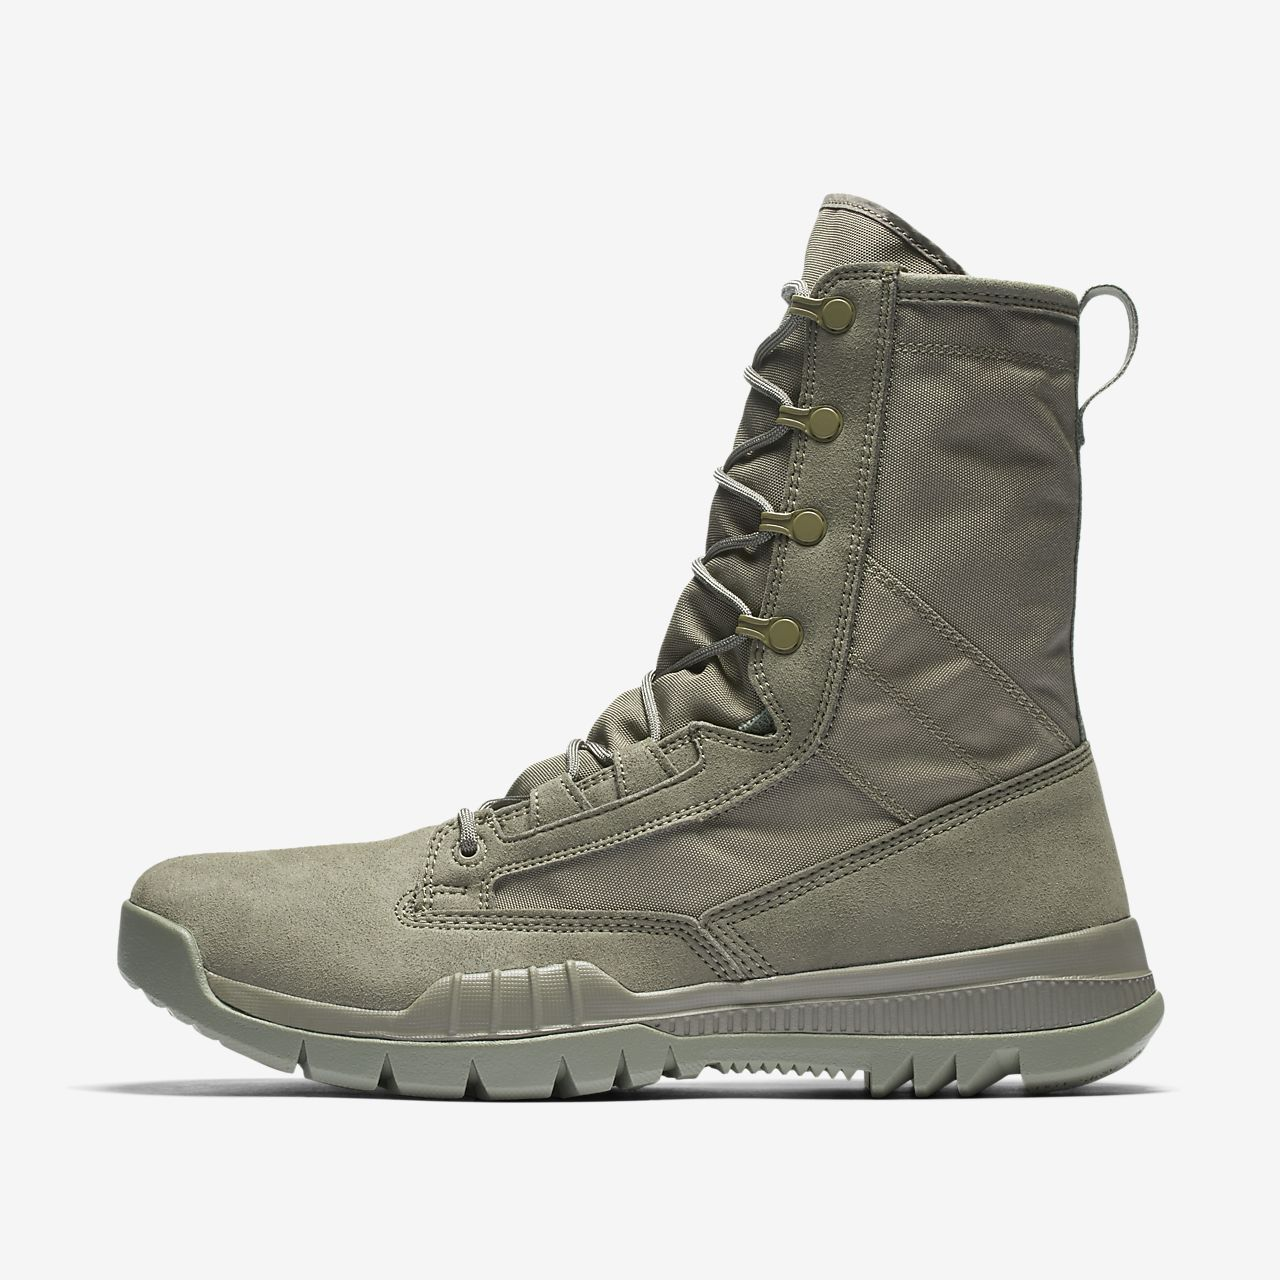 """631371 220 SFB Field 8"""" Boots Size 9.5 Mens"""